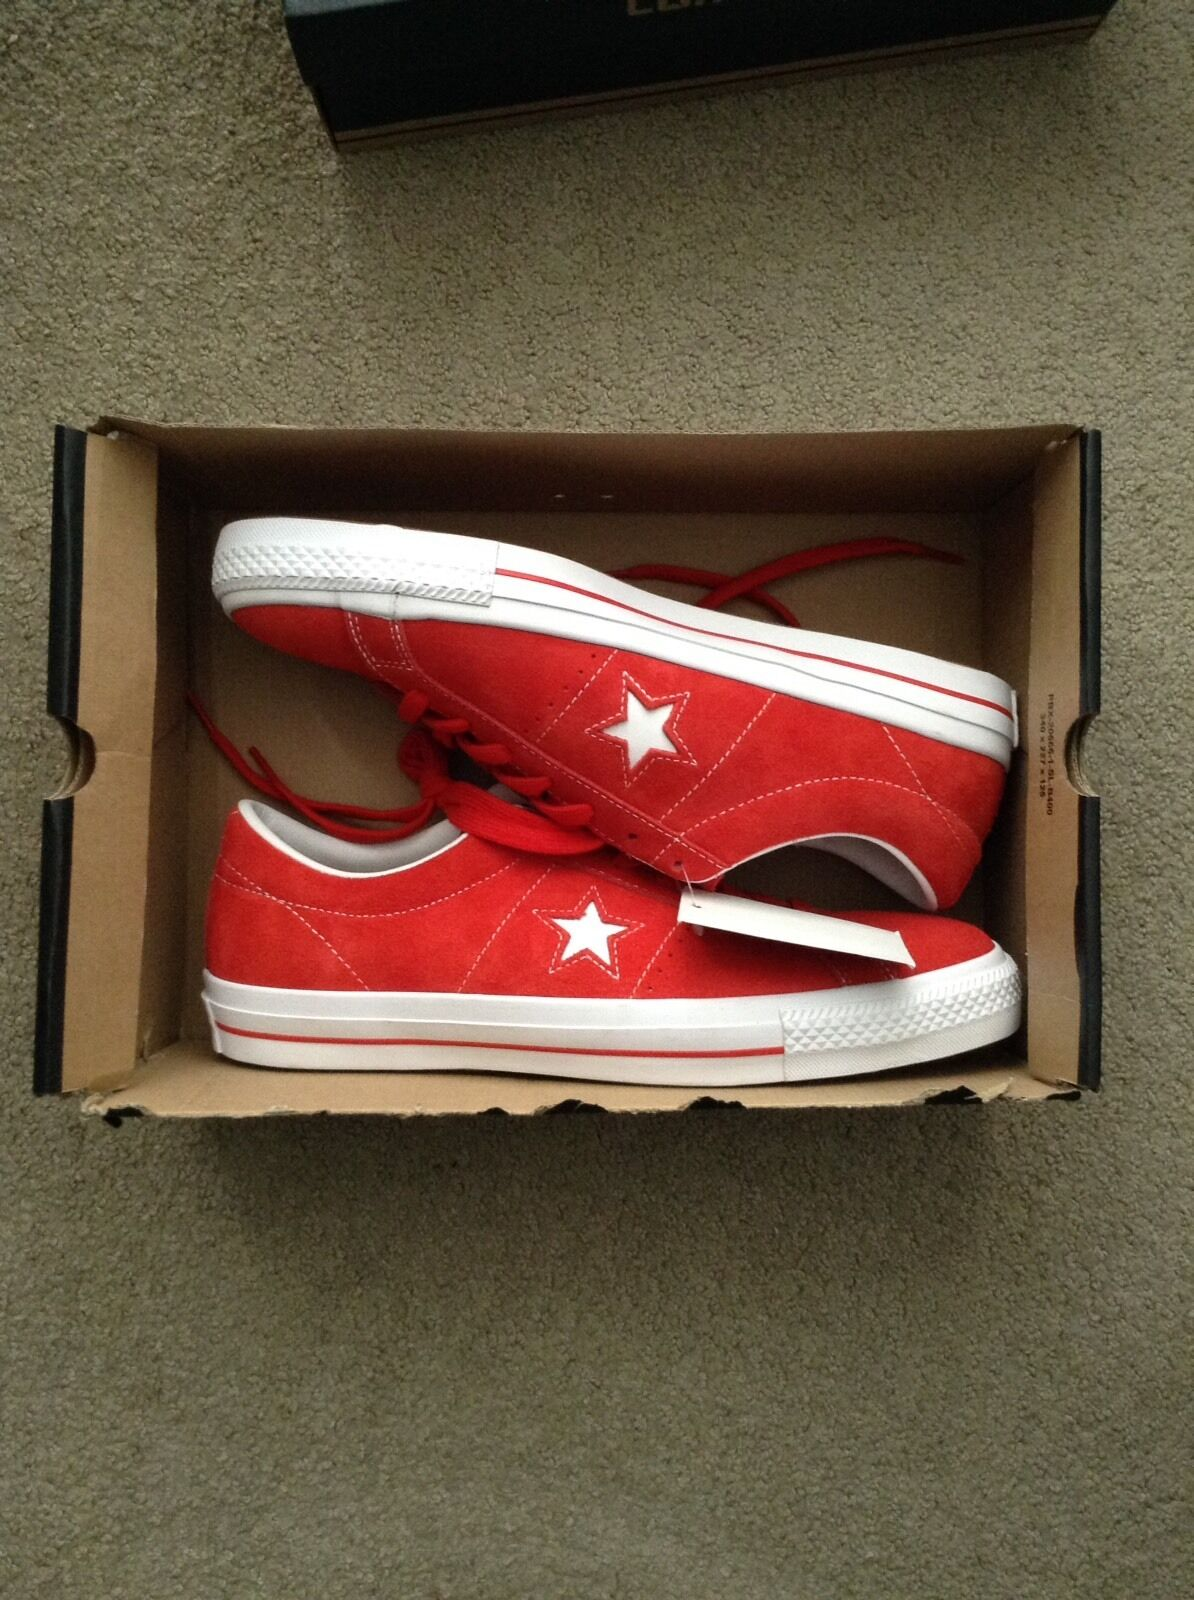 NEW Converse Cons One Star Red Suede OX Lunarlon size 11.5